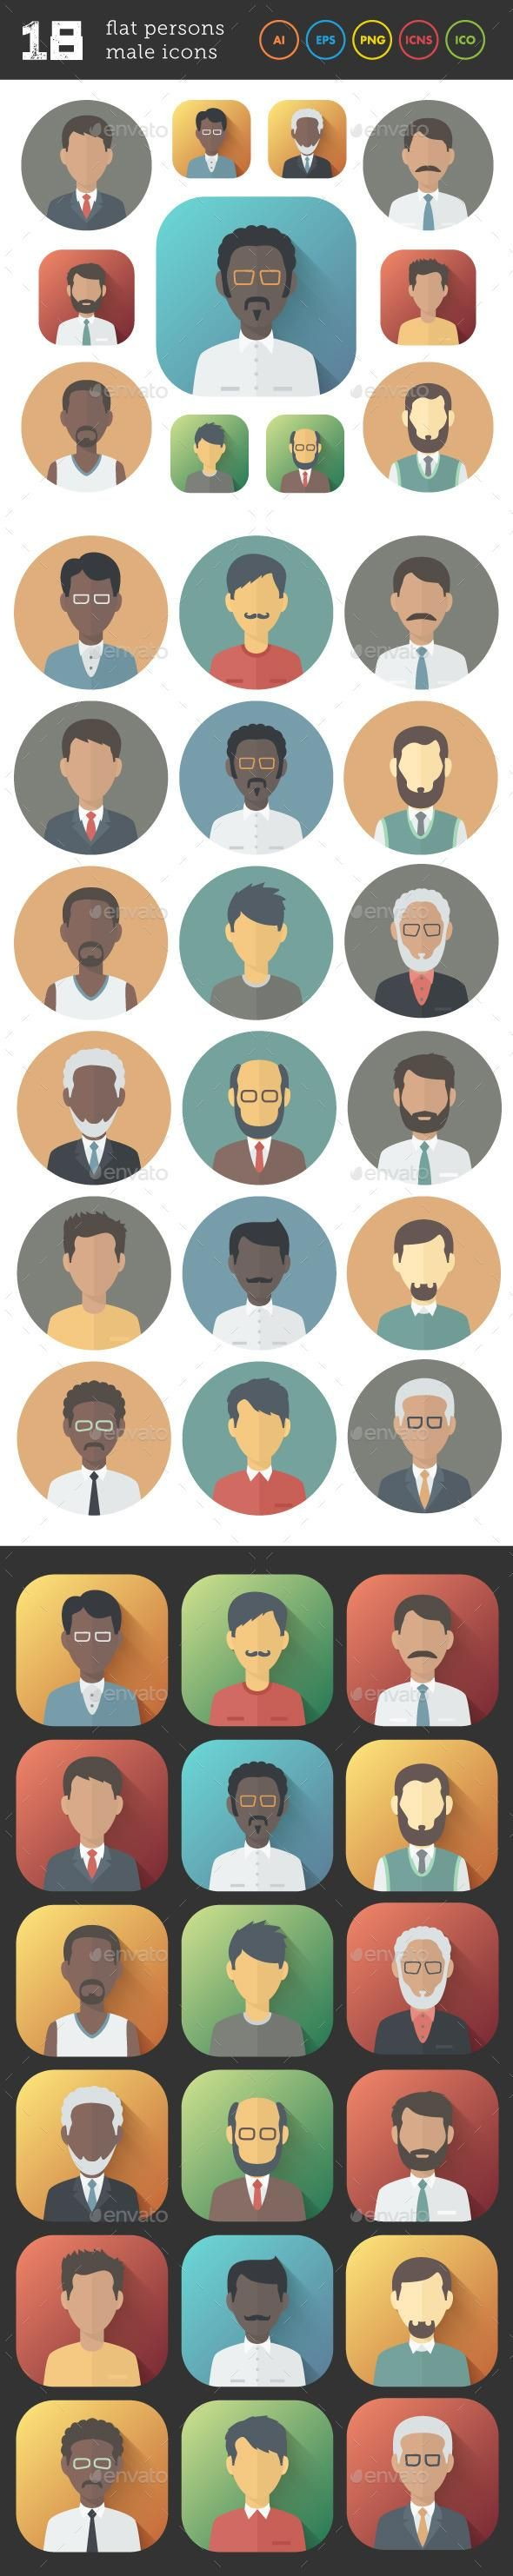 Flat Icons Set of Male Persons #characters